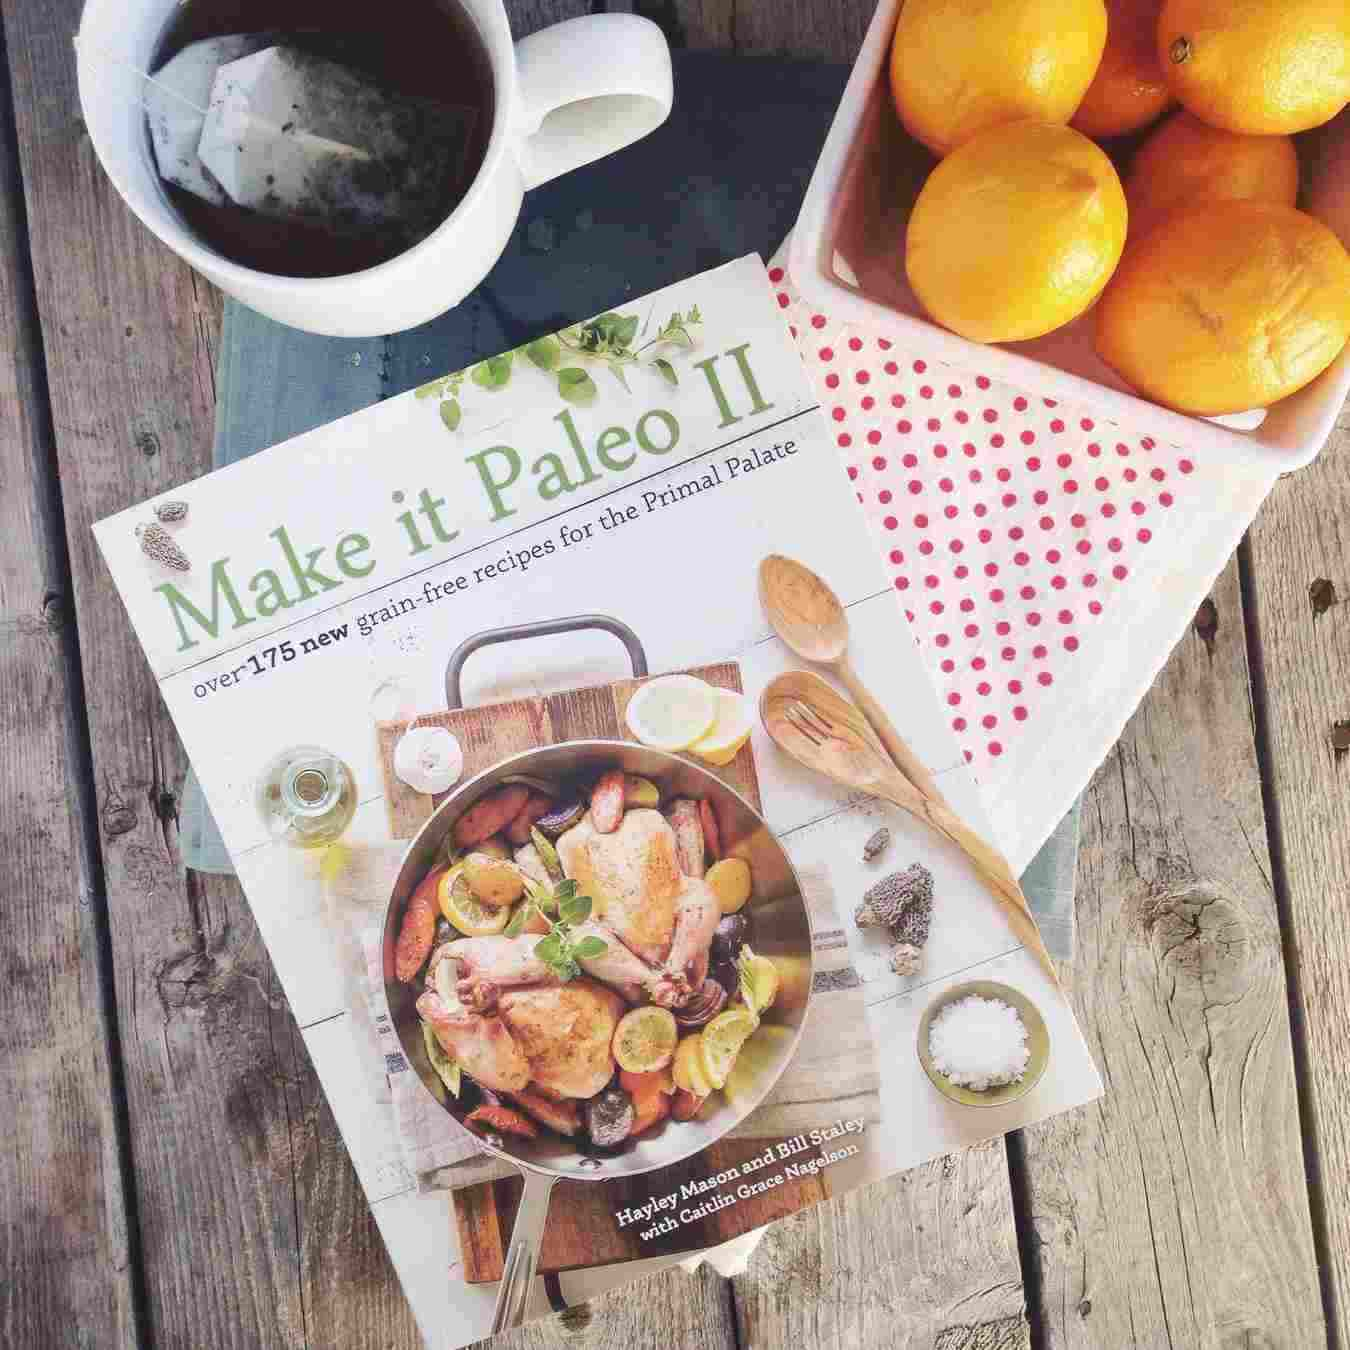 Make It Paleo 2 Book Review and Giveaway | simplerootswellness.com